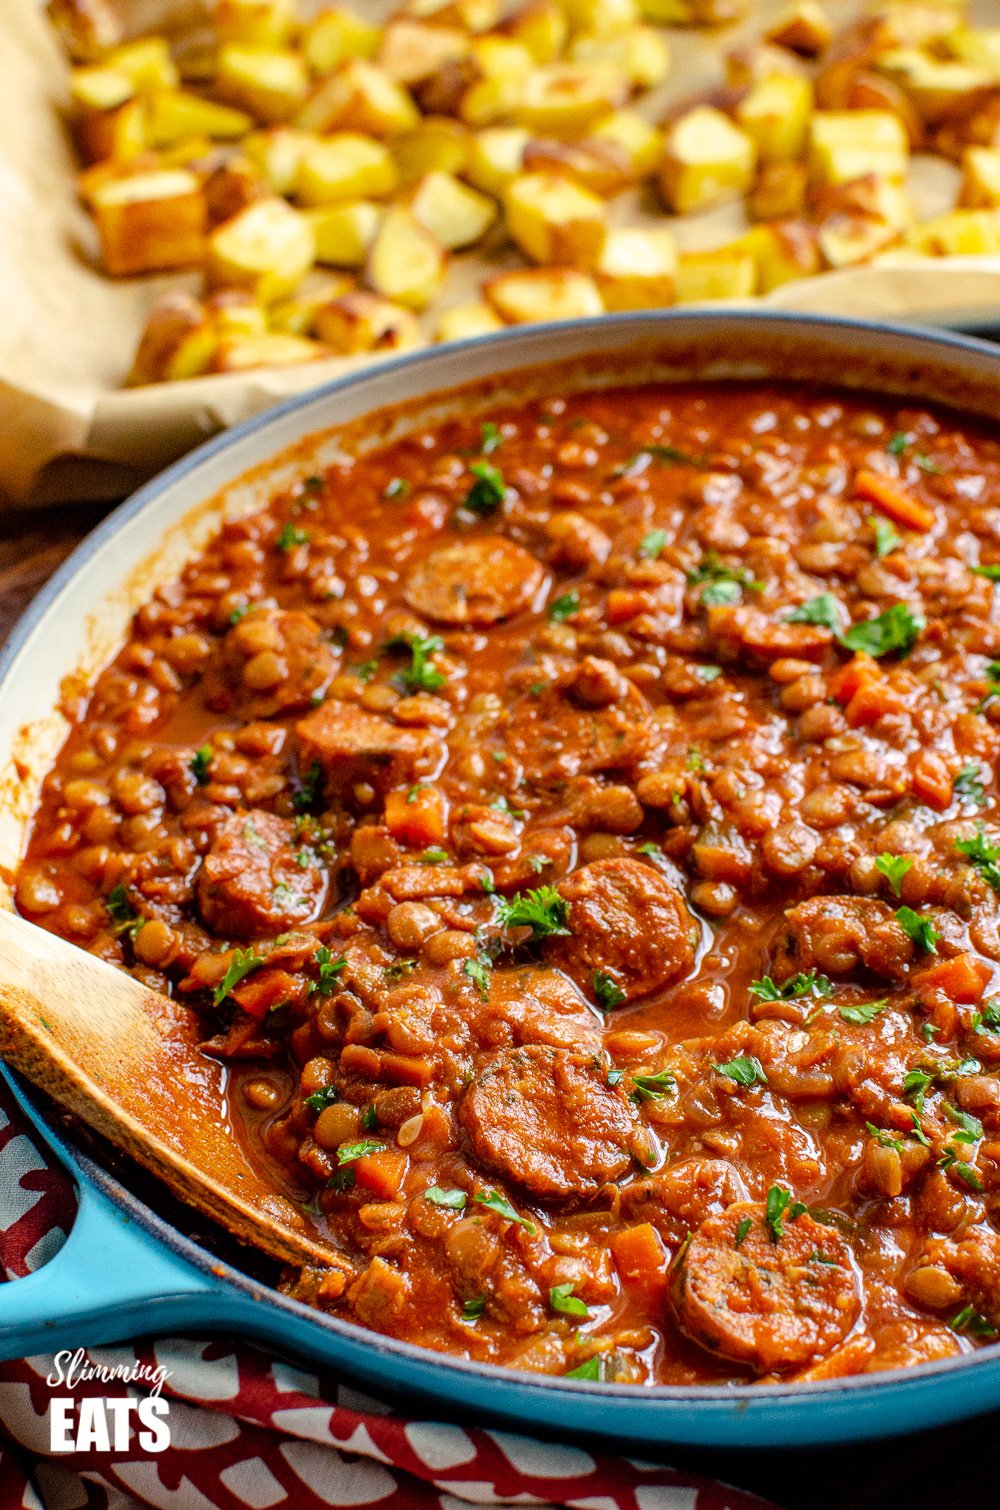 One Pot Sausage and Lentil Casserole in le creuset cast iron pan with wooden spoon